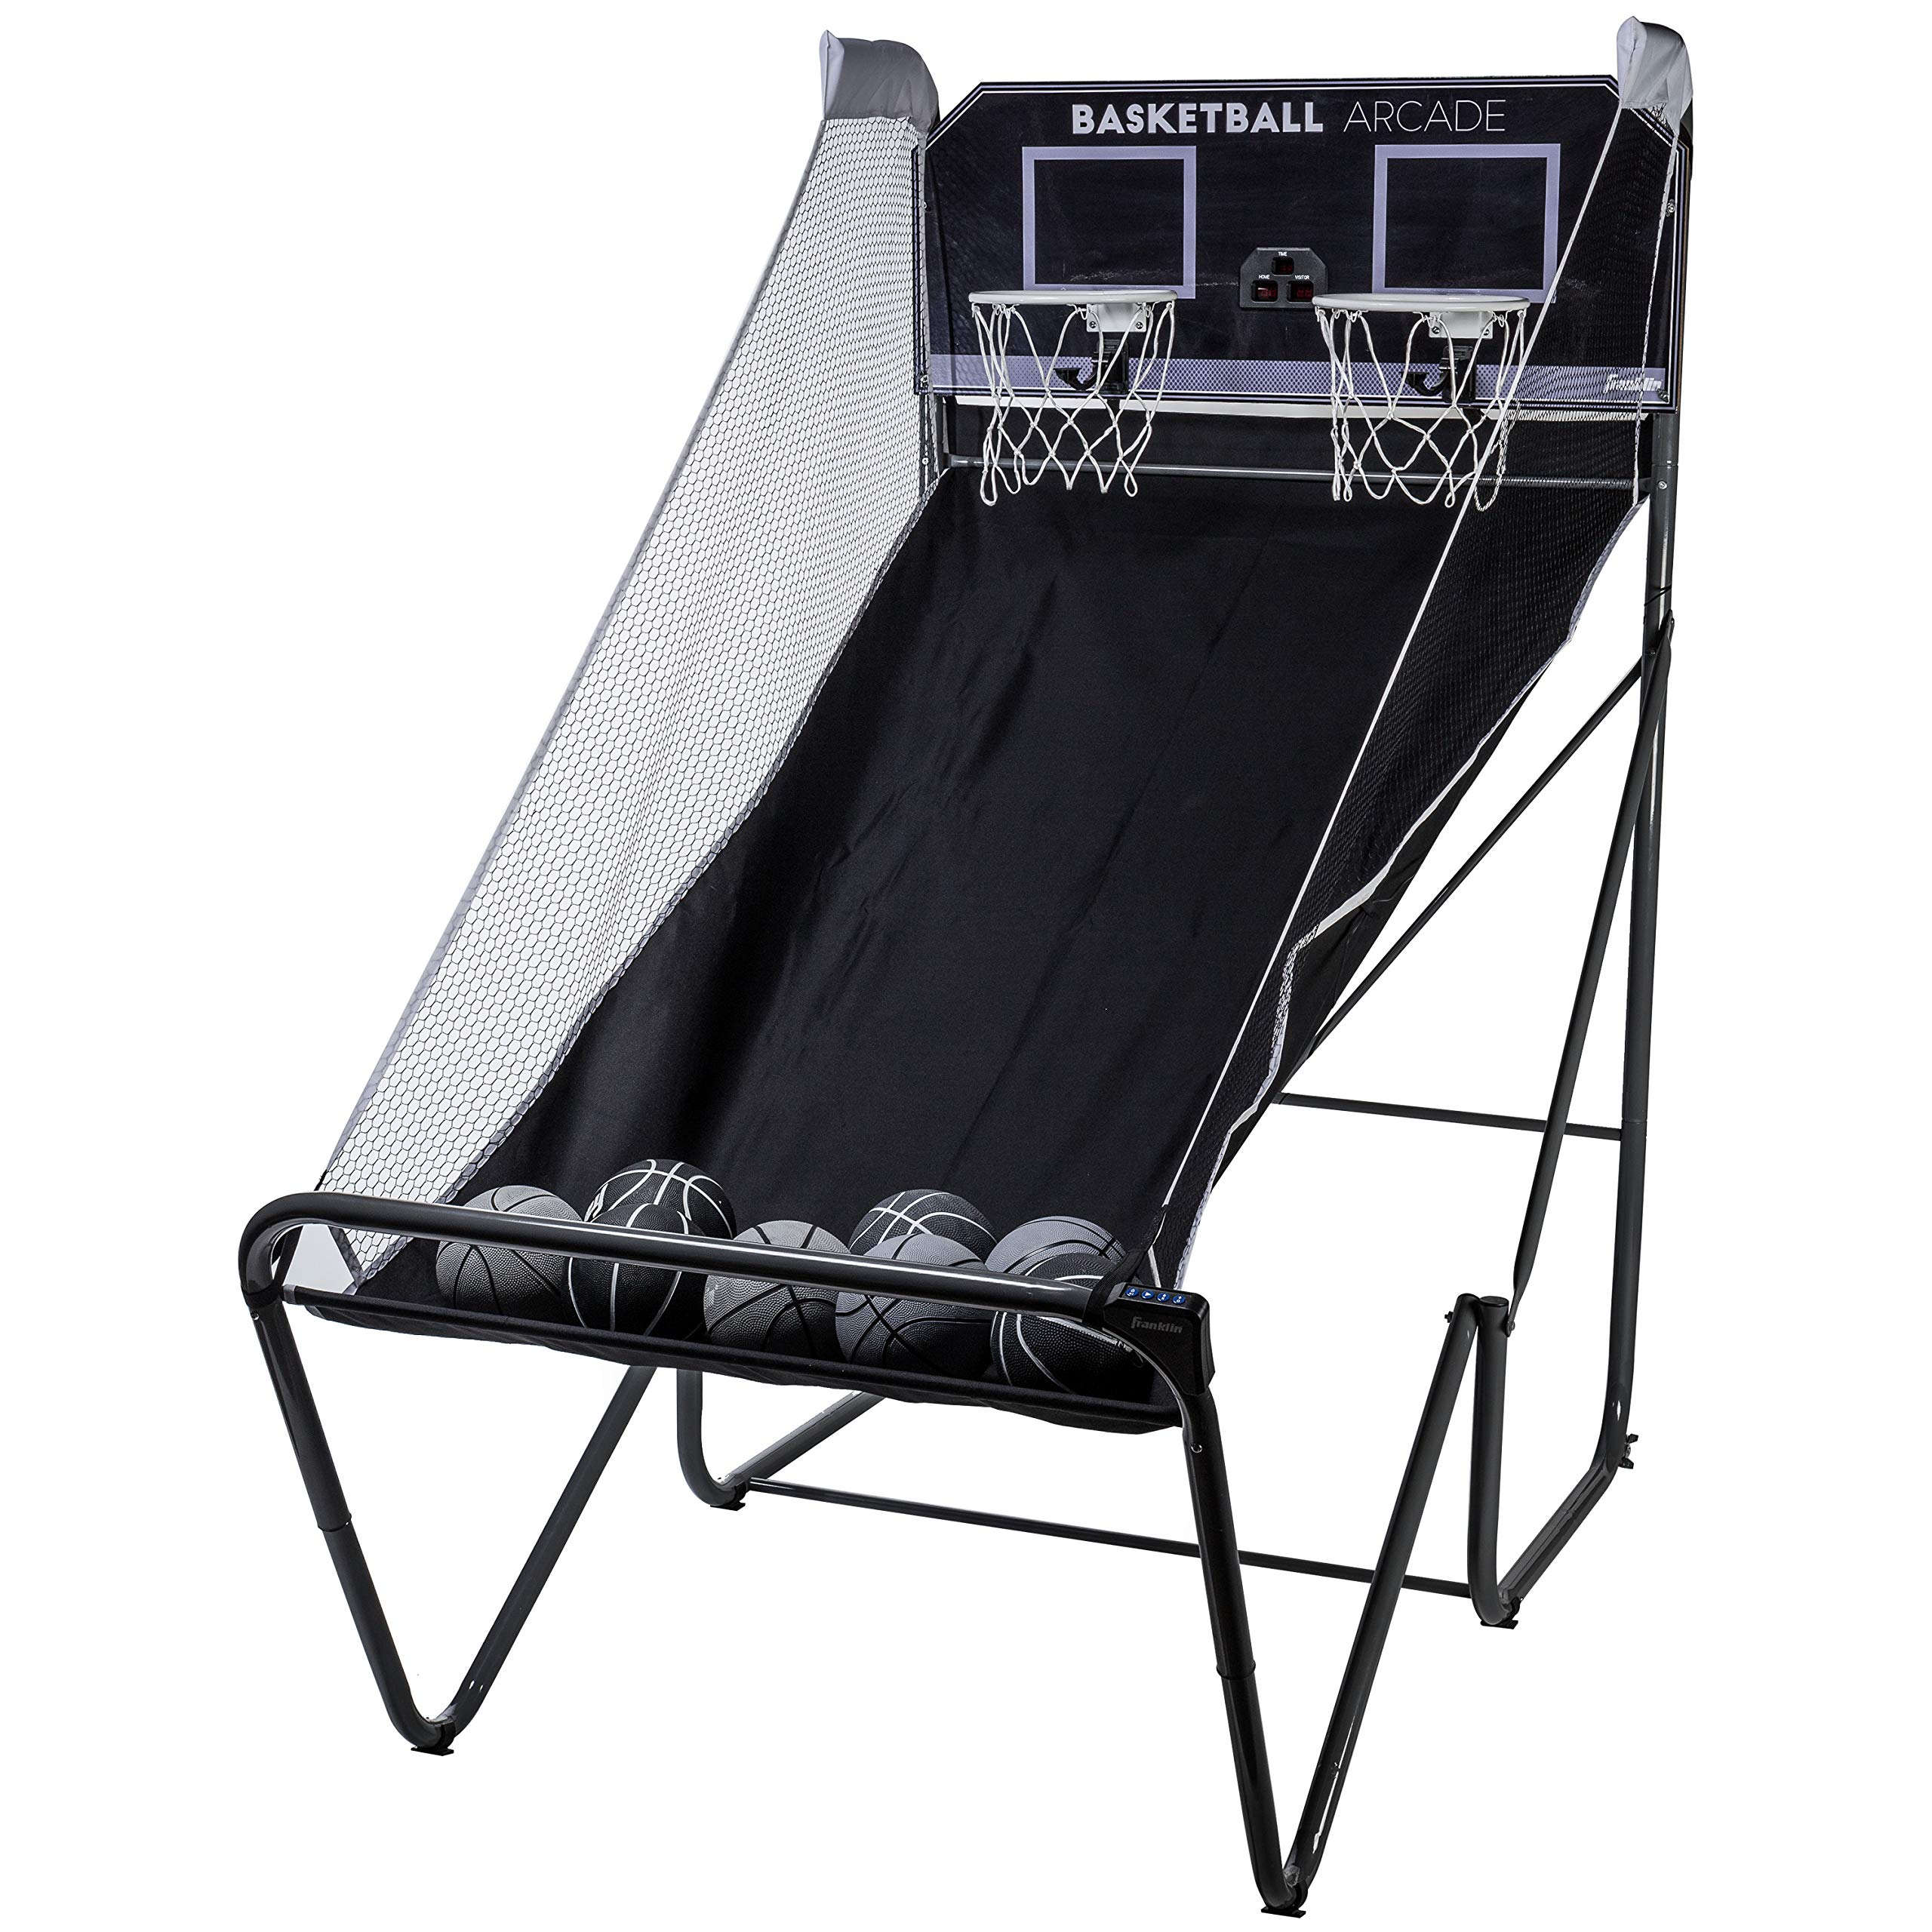 Franklin Sports Basketball Arcade - Indoor Basketball Hoop Game - Basketball Arcade Game - Play Indoor Basketball Hoops Anytime, Anywhere - Basketball Games for All Ages by Franklin Sports